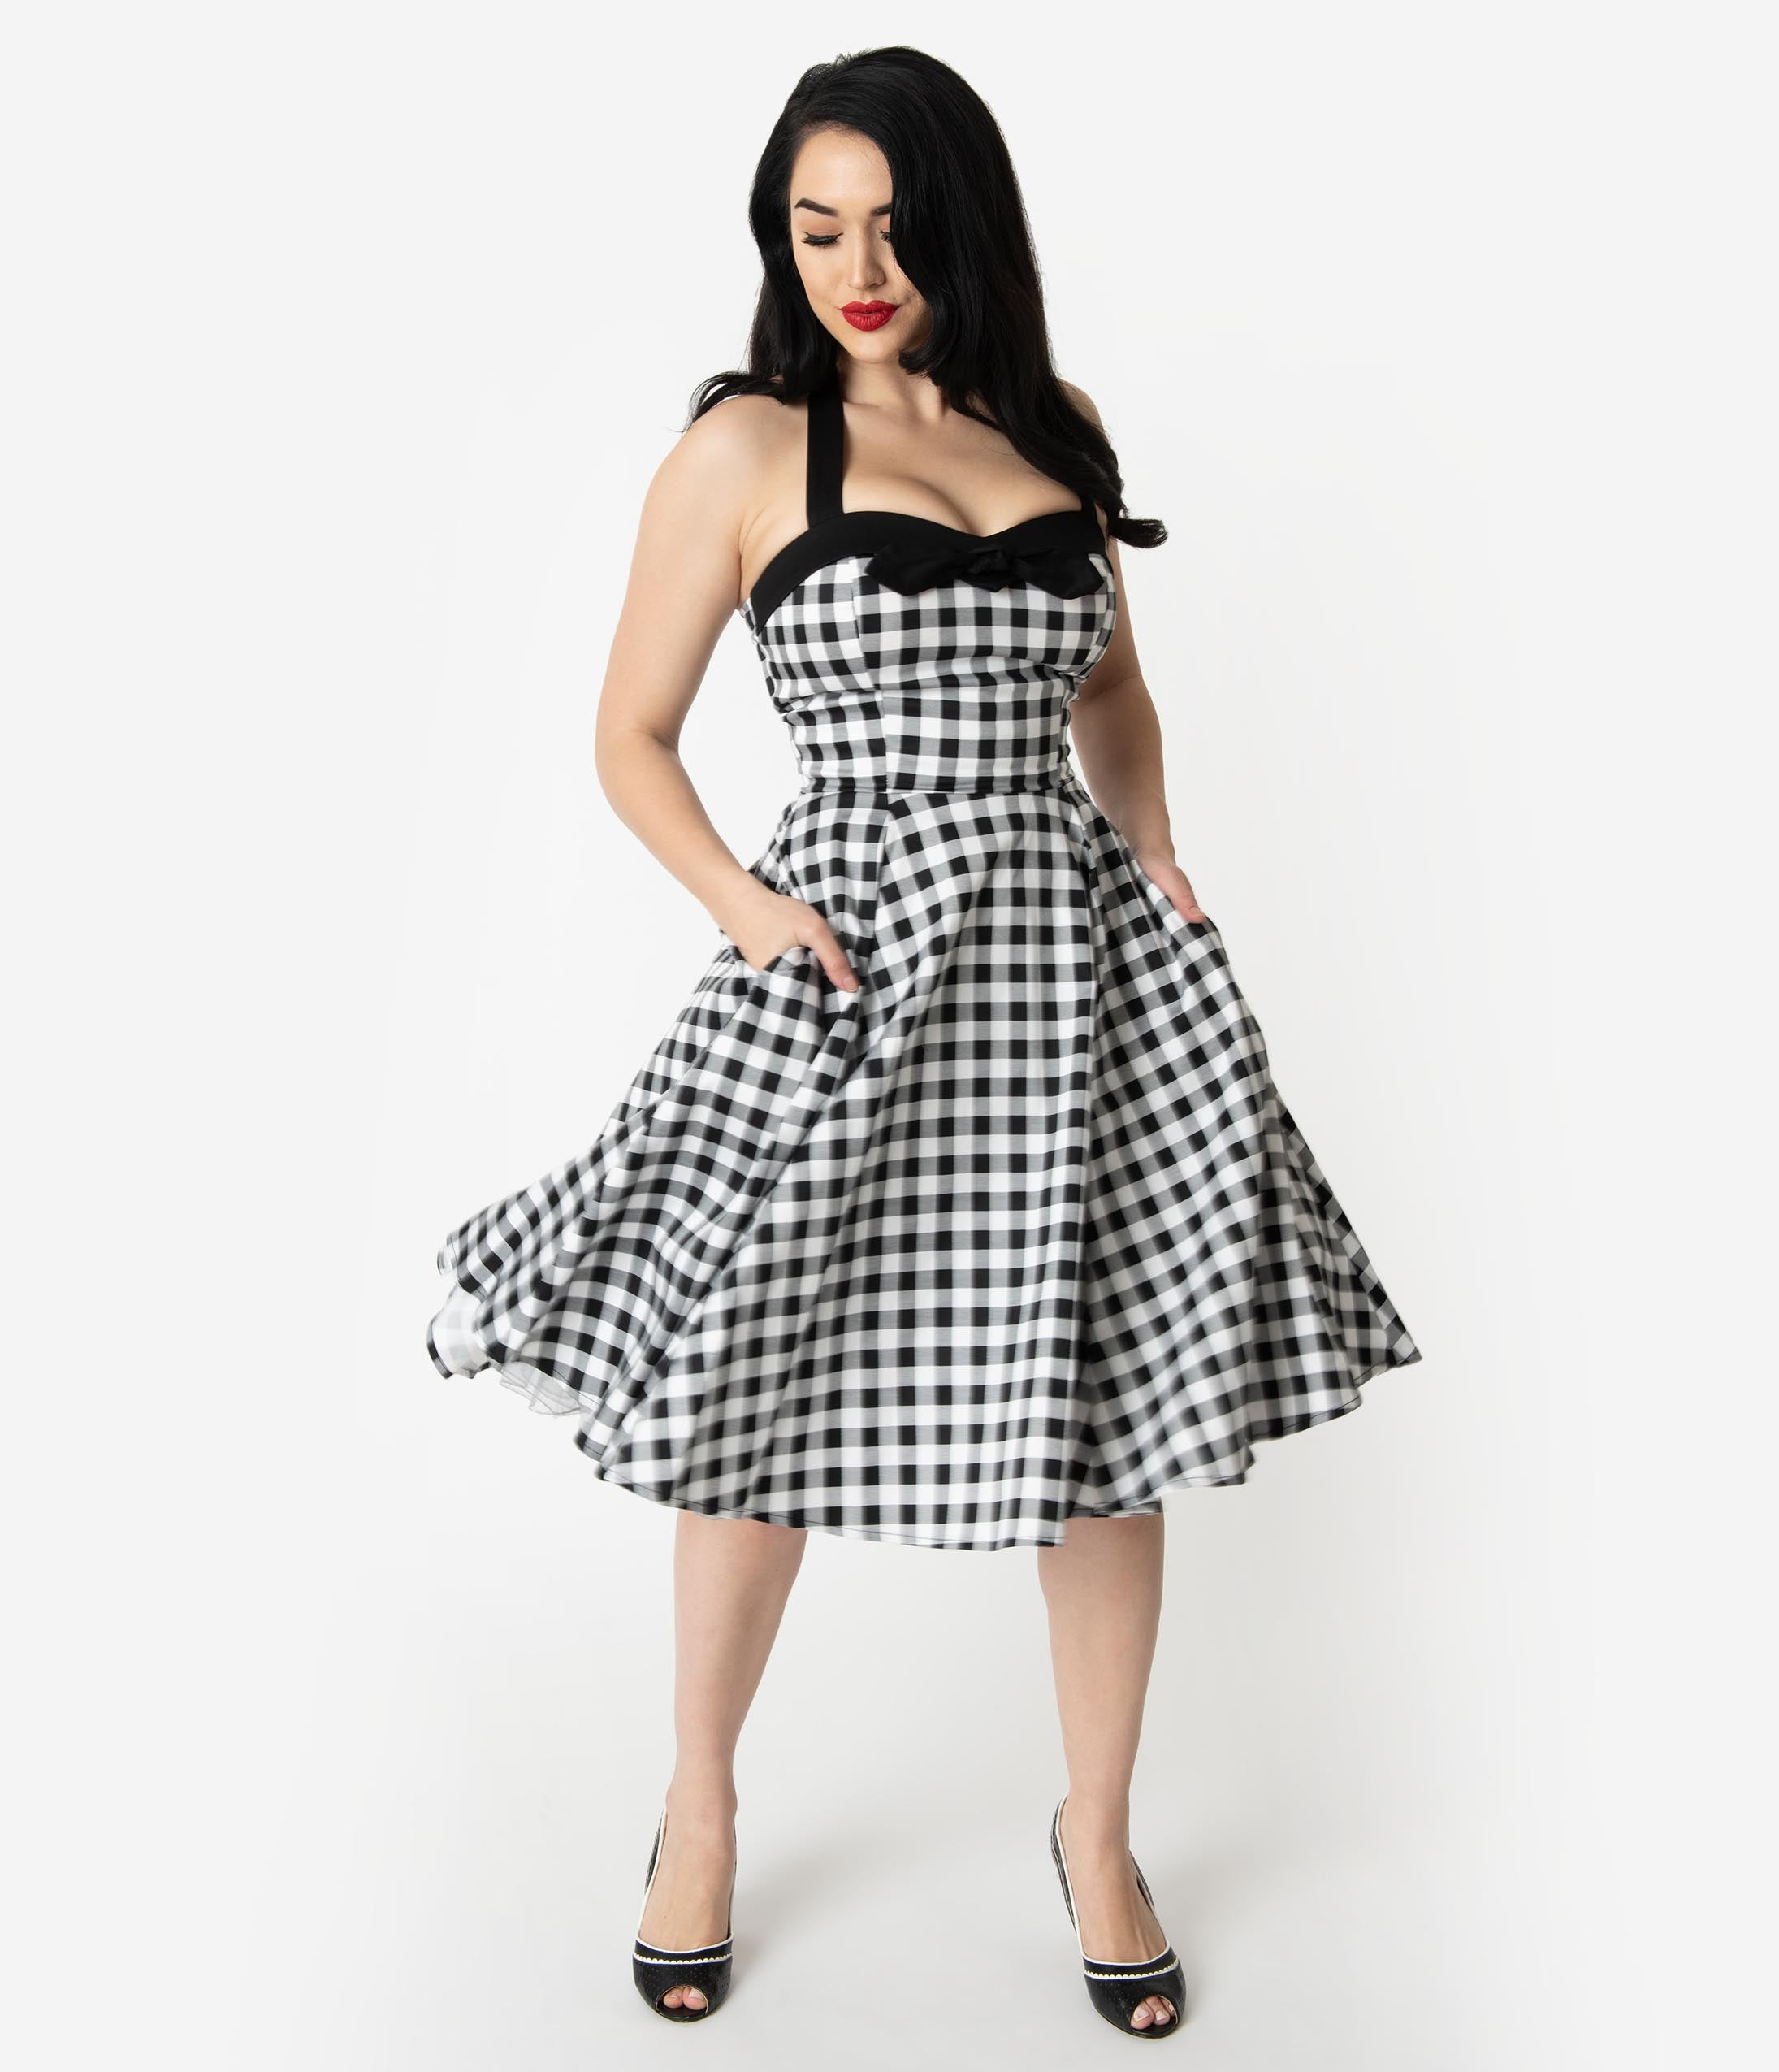 052ab70f1b 50 Vintage Inspired Clothing Stores Vintage Style White Black Gingham Print  Halter Swing Dress  68.00 AT